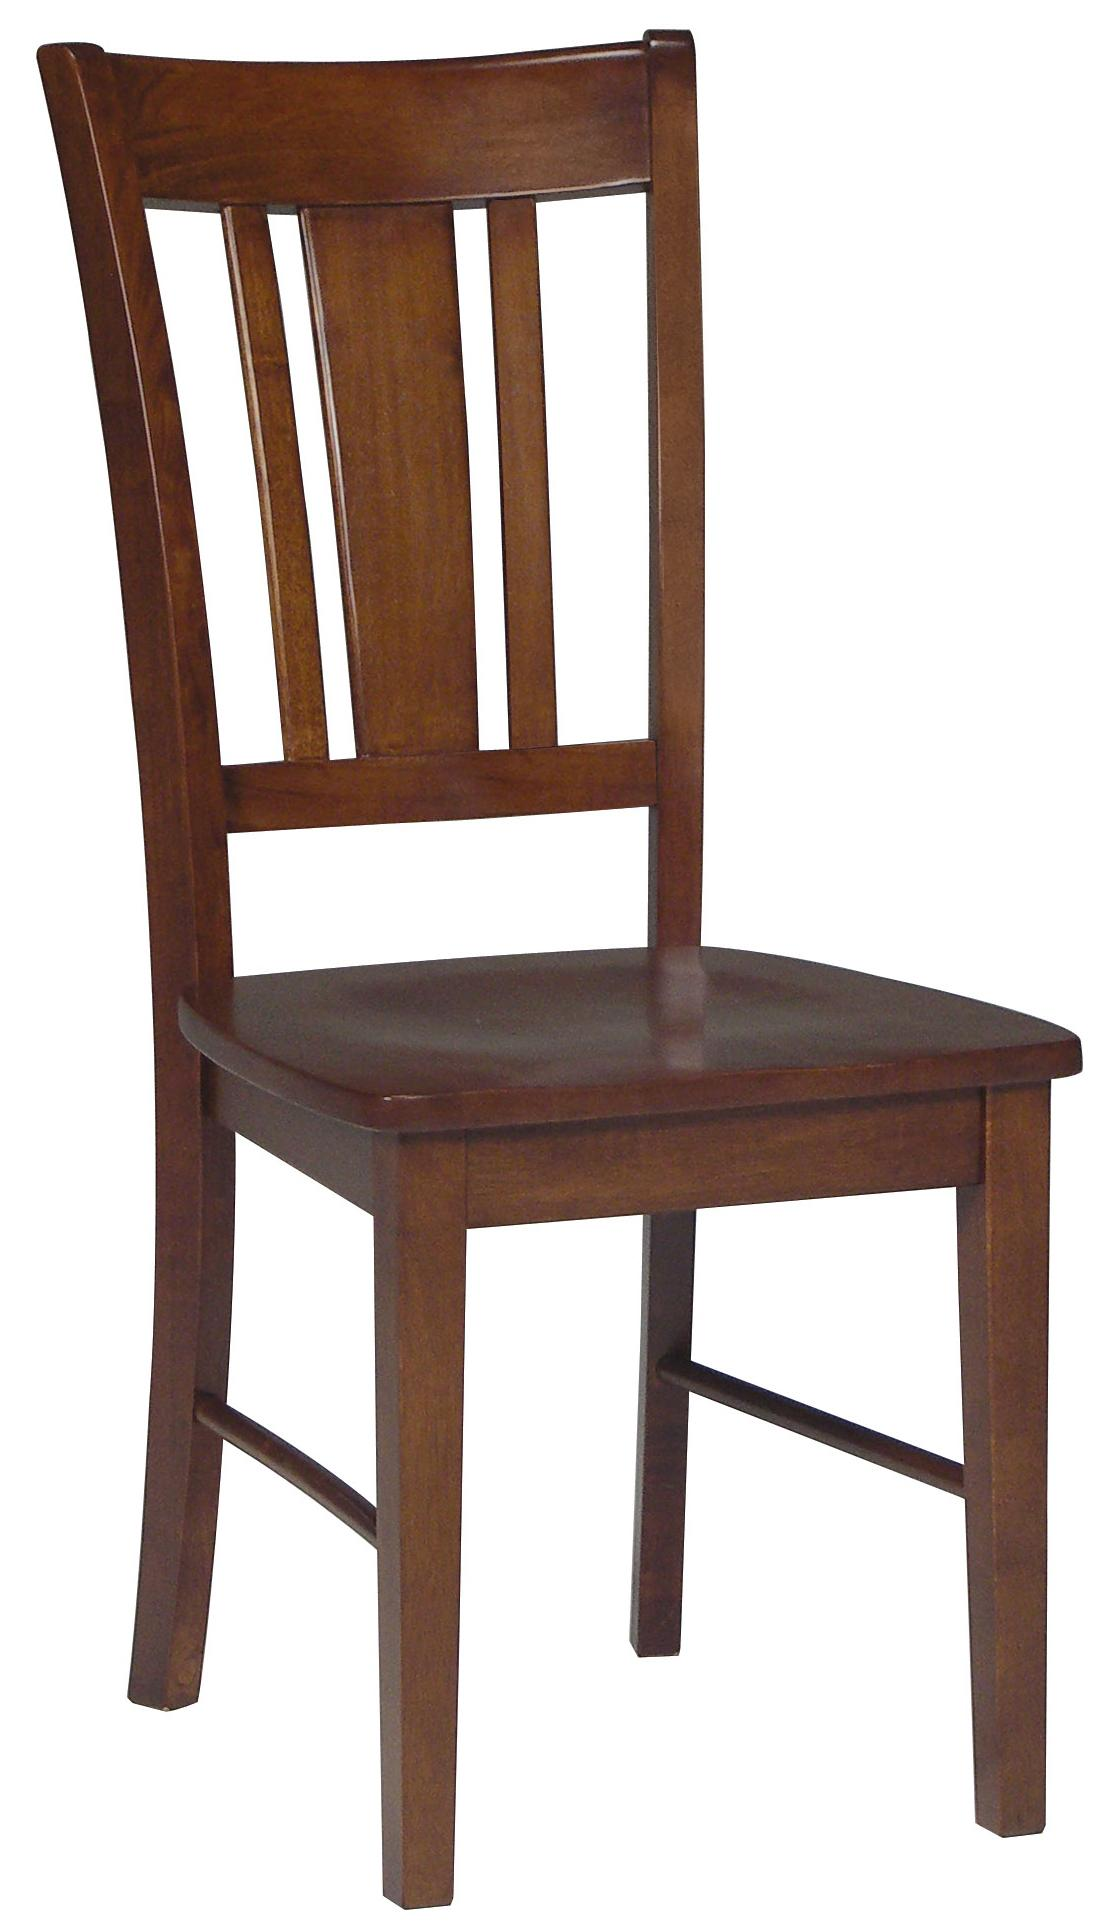 John Thomas Dining Essentials Splat Back Side Chair - Item Number: C48-10